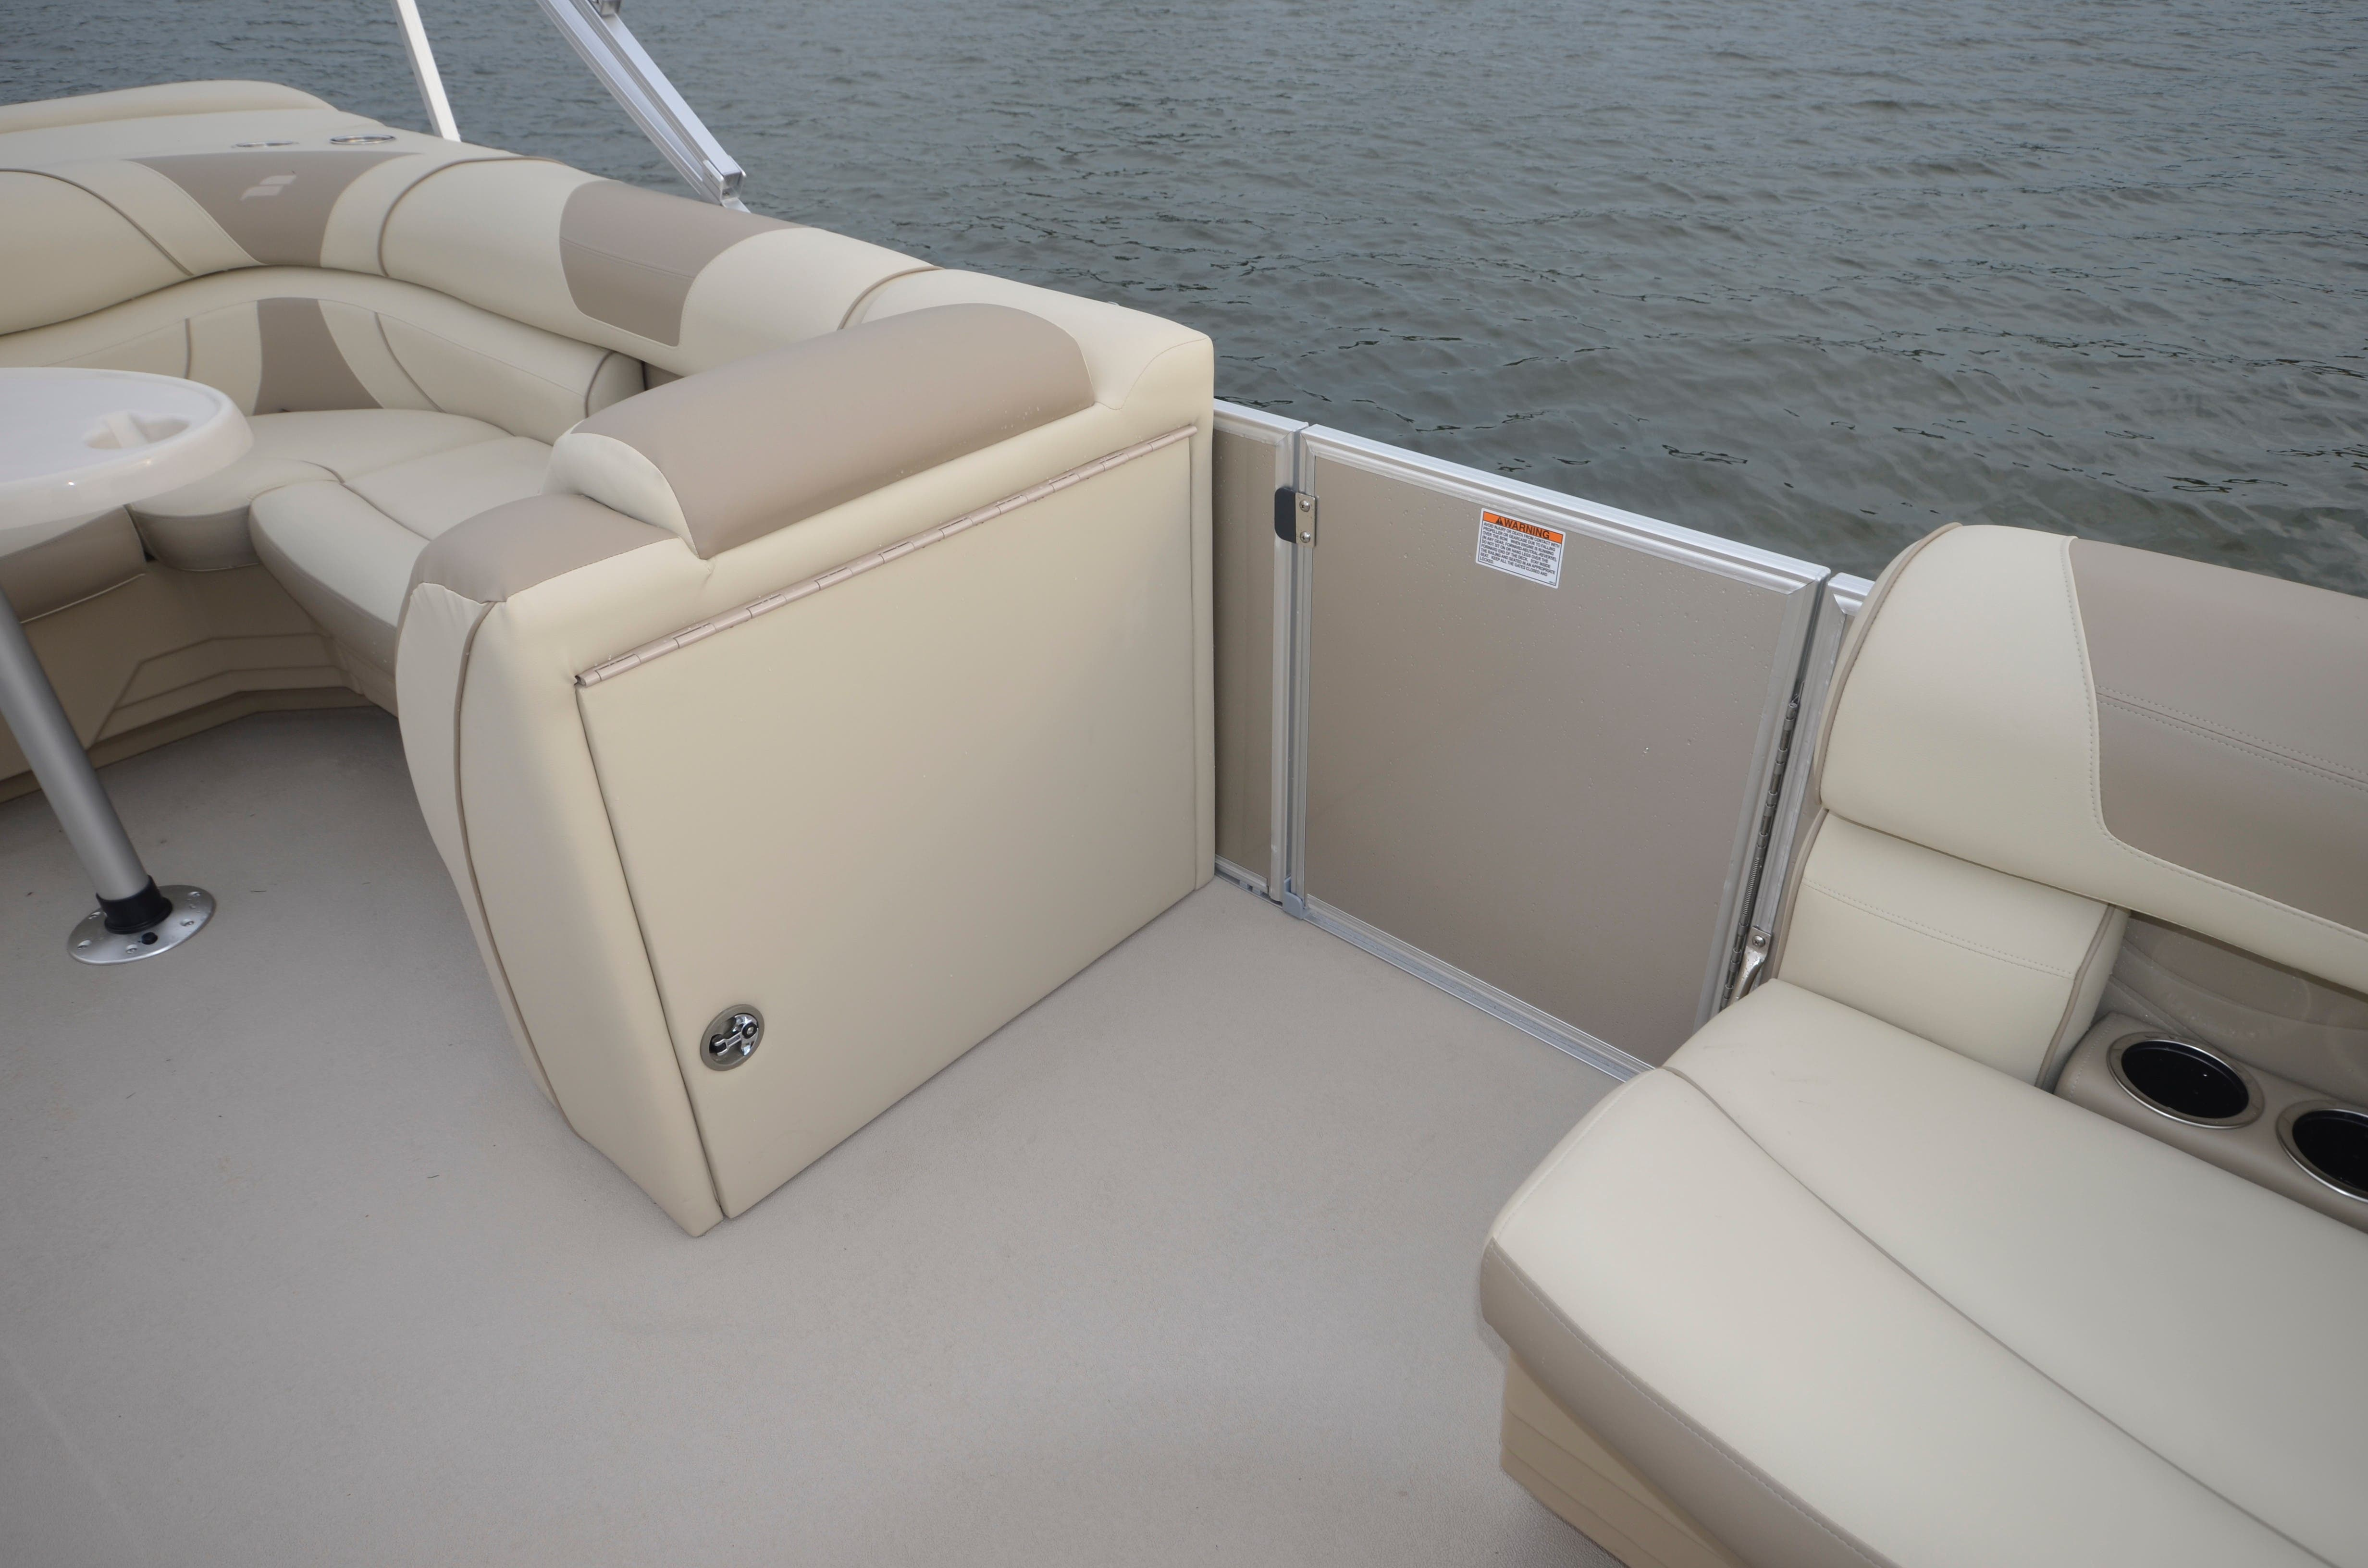 2022 Starcraft boat for sale, model of the boat is EX 20C & Image # 9 of 13